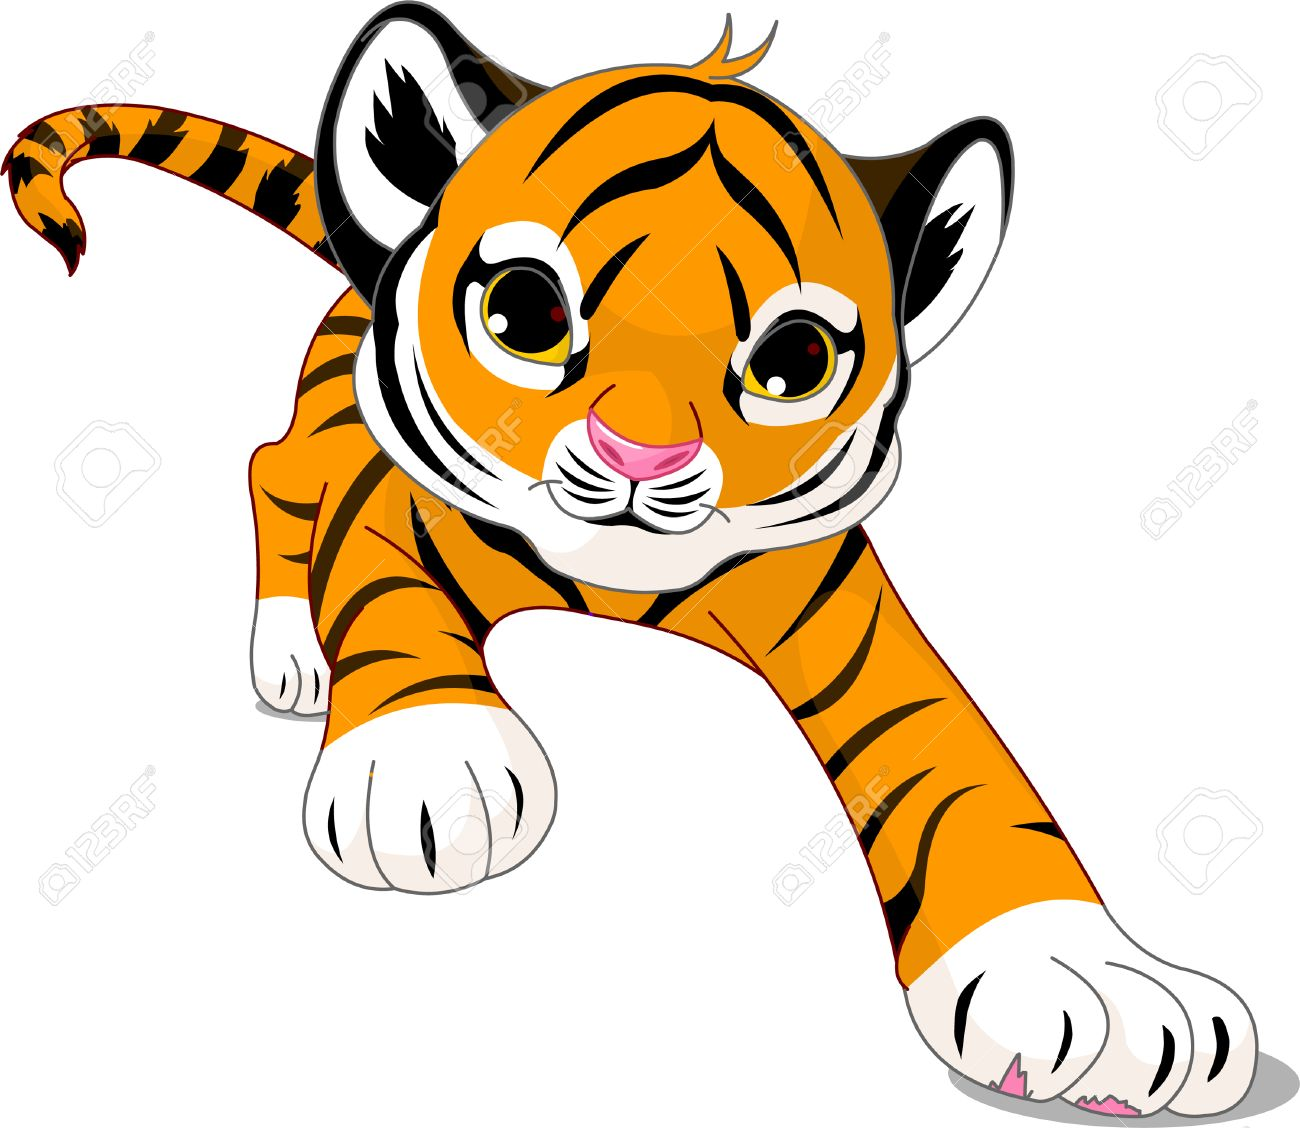 36 128 tiger stock vector illustration and royalty free tiger clipart rh 123rf com free clipart tiger paw prints free clipart tiger head